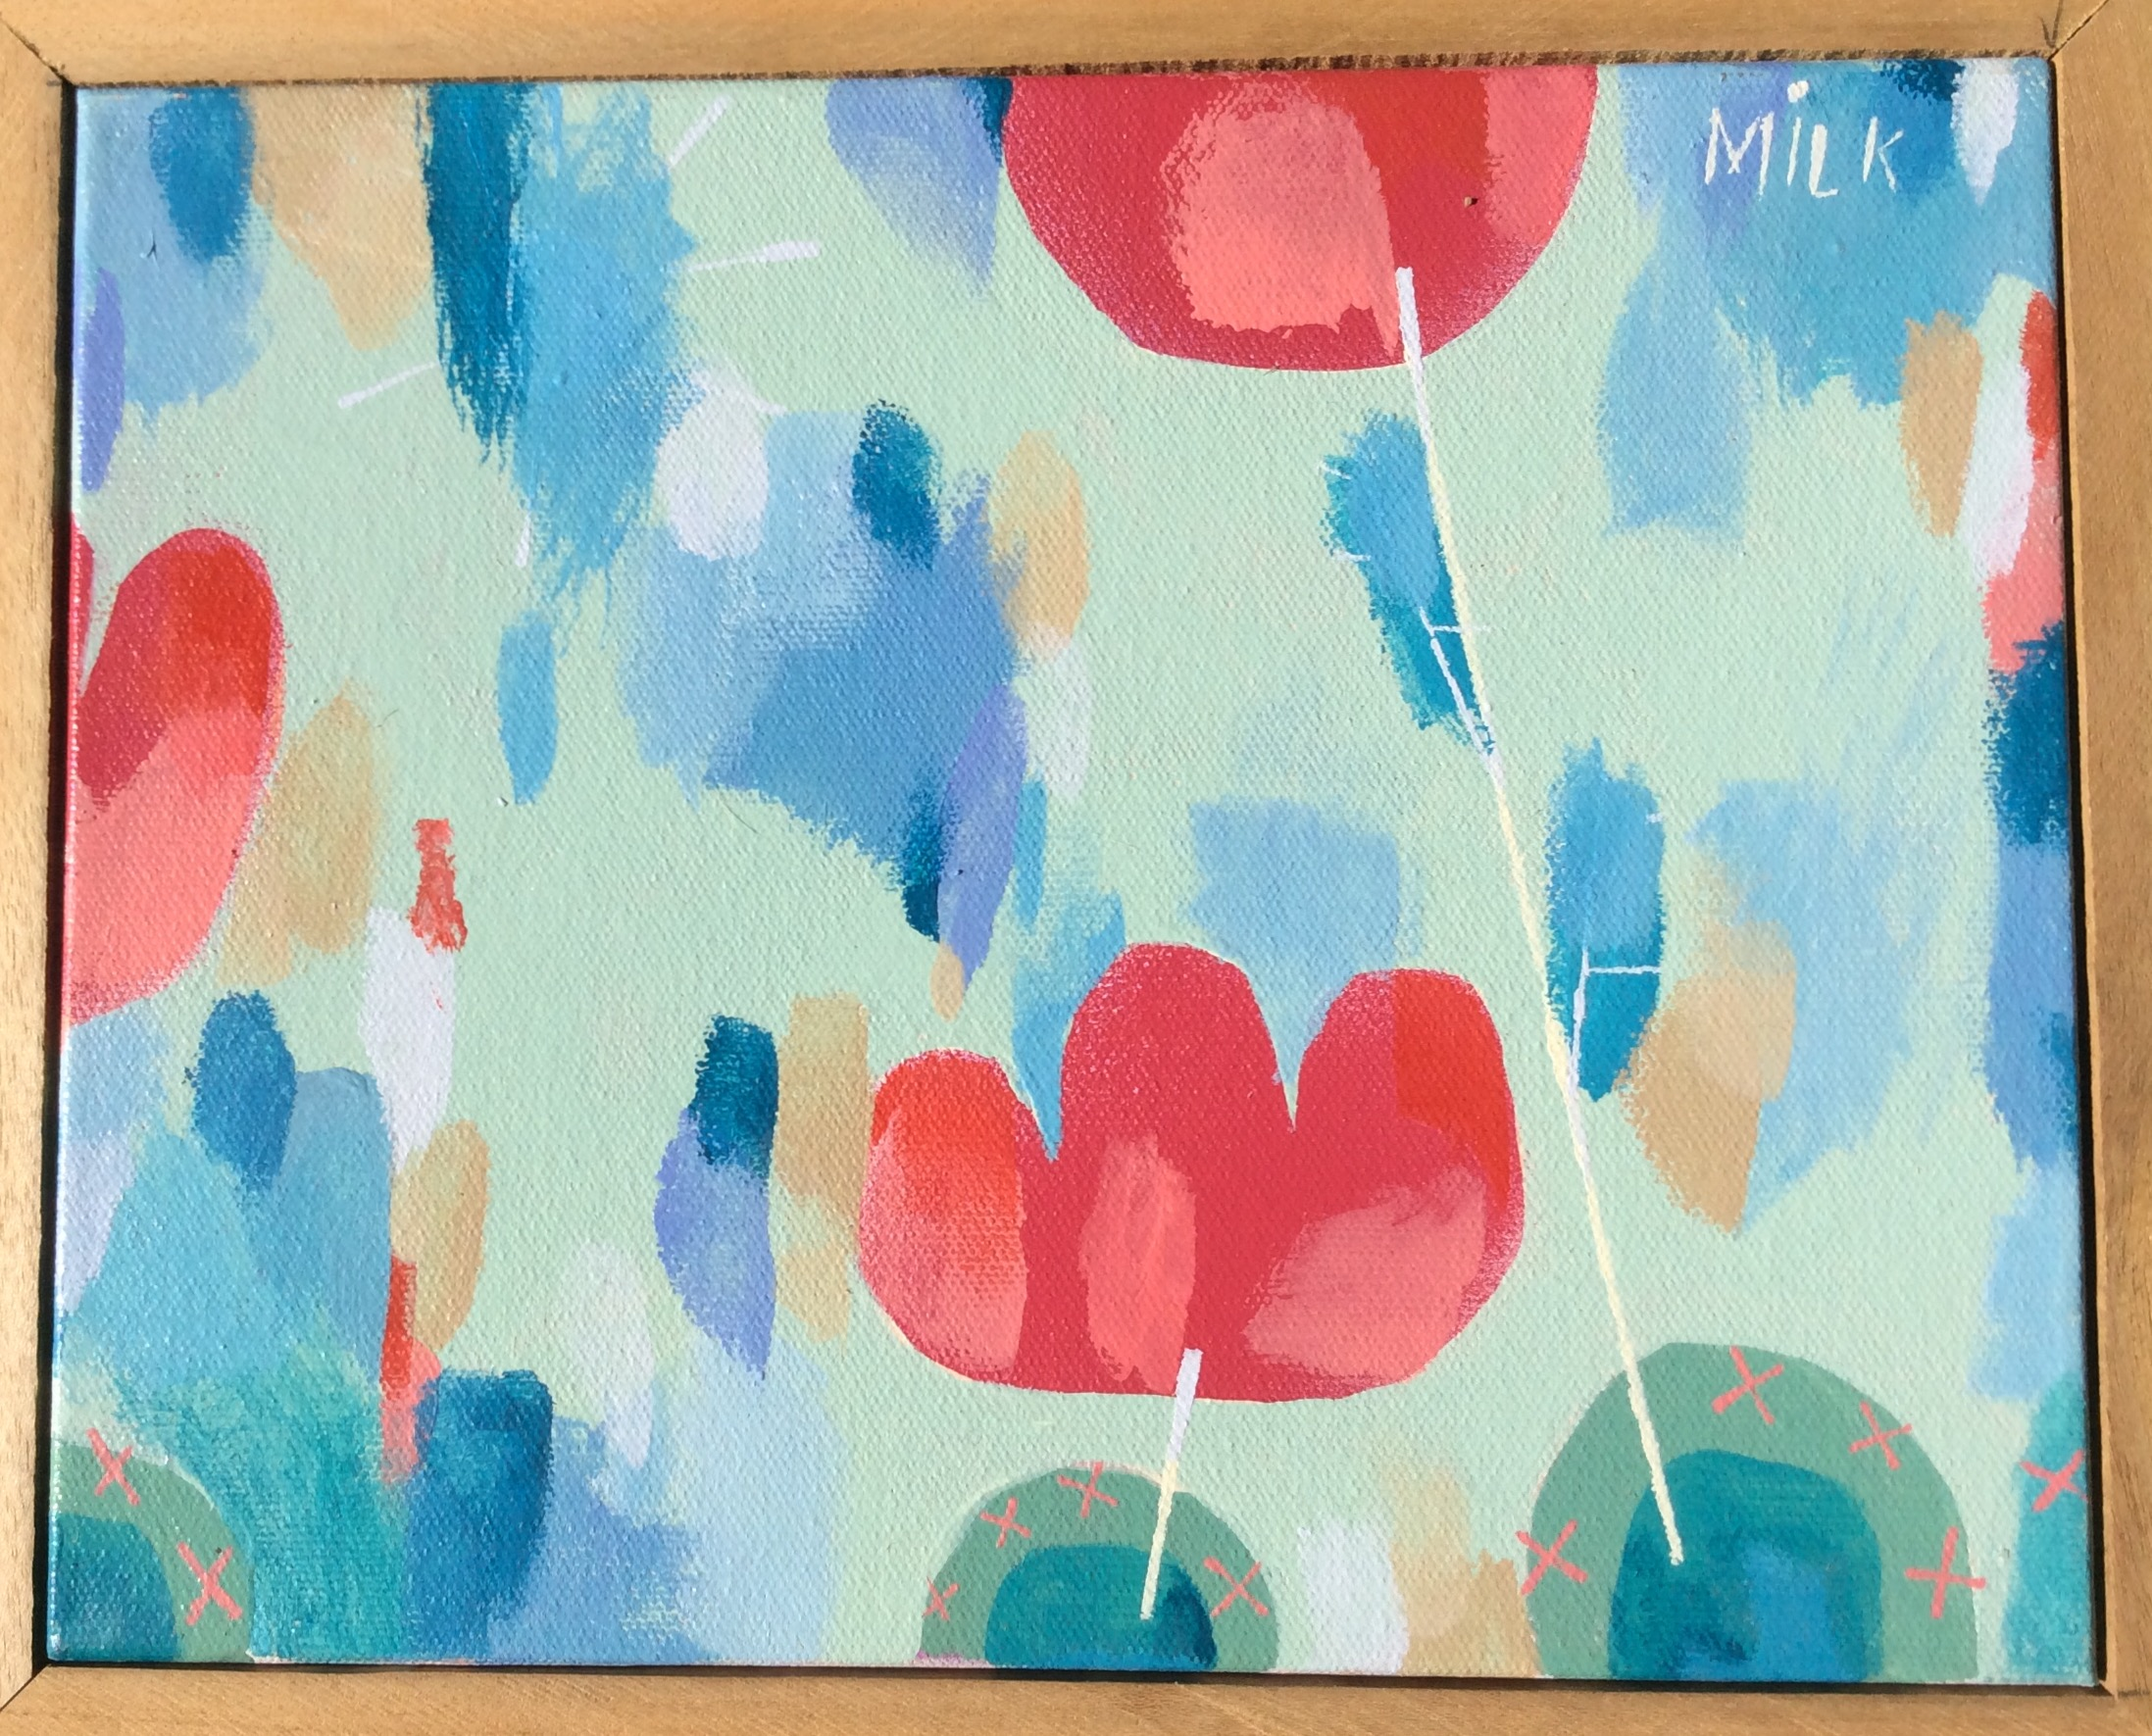 SOLD Small flowers. $80. 11 w. x 9 h. paint on canvas with wooden frame